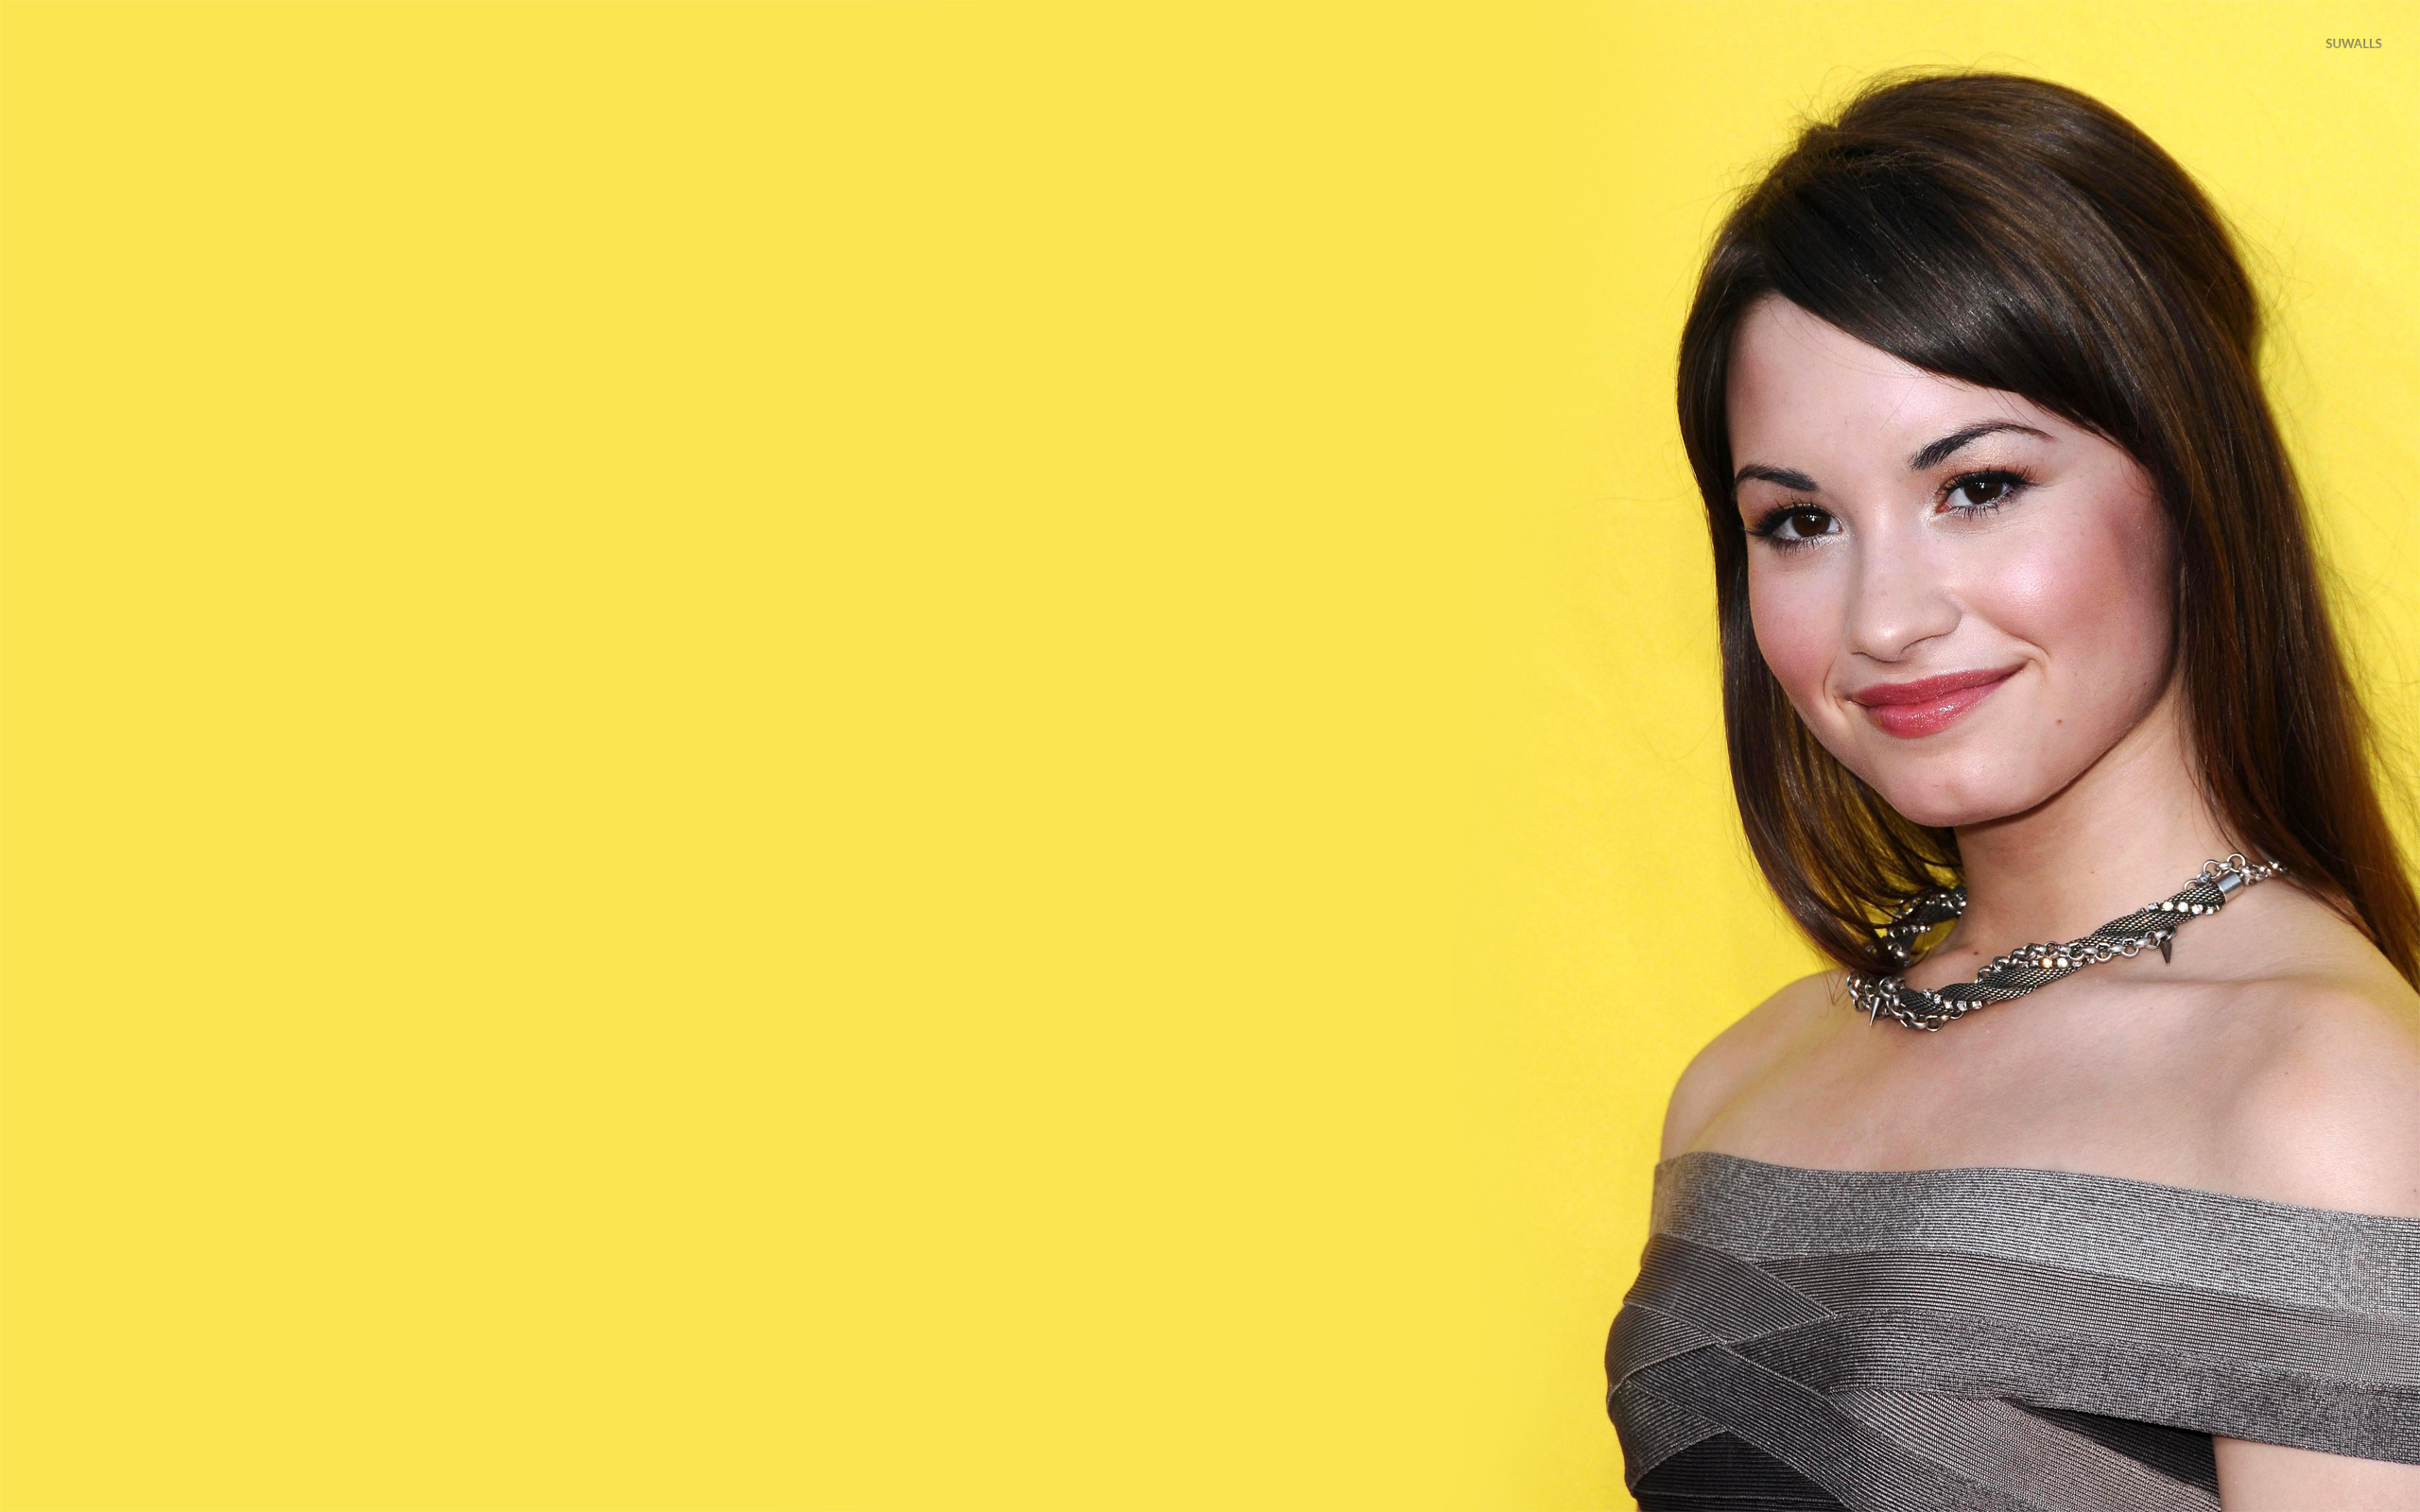 demi lovato [18] wallpaper - celebrity wallpapers - #6273